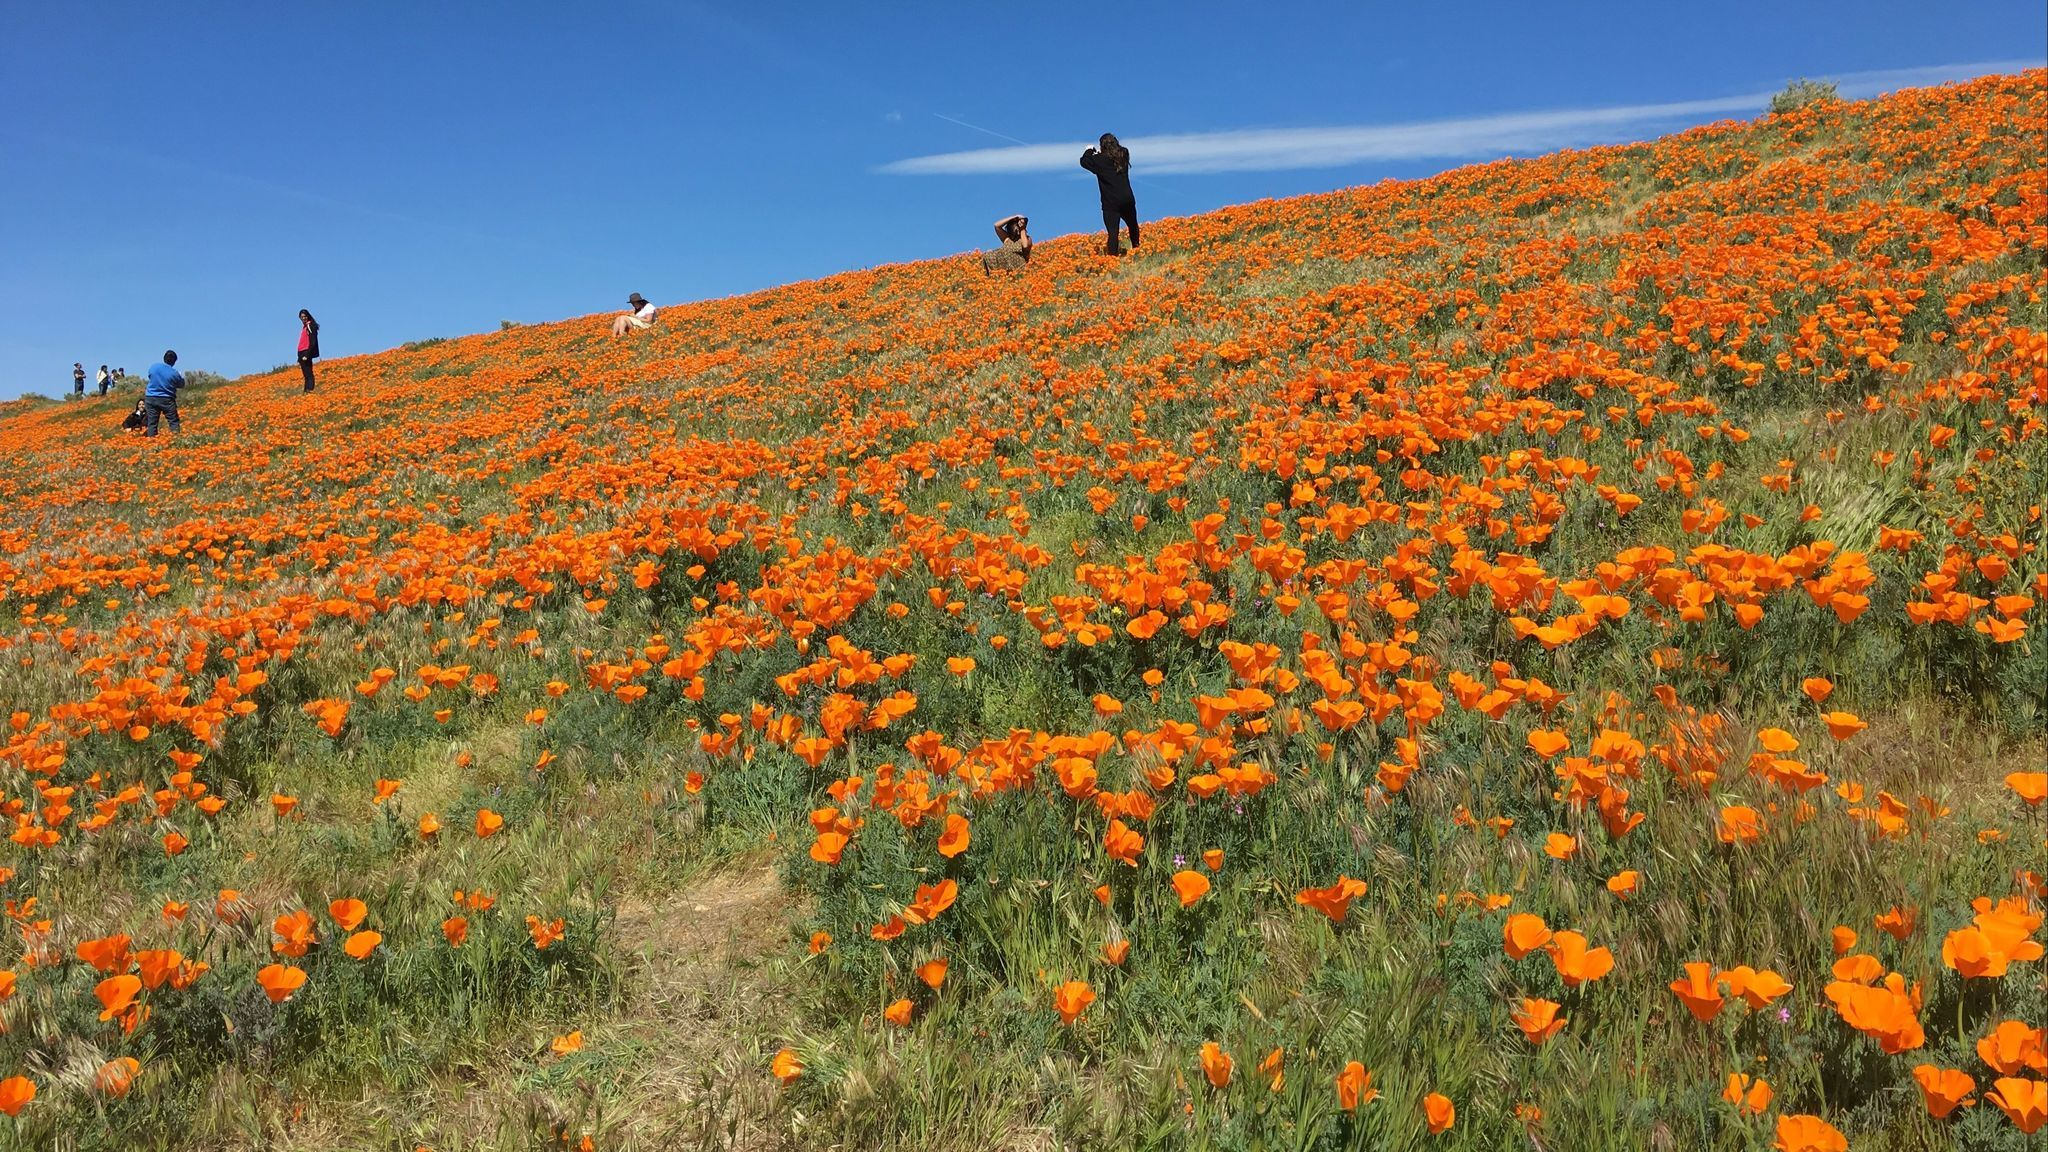 Your chance to see Southern California's epic wildflower